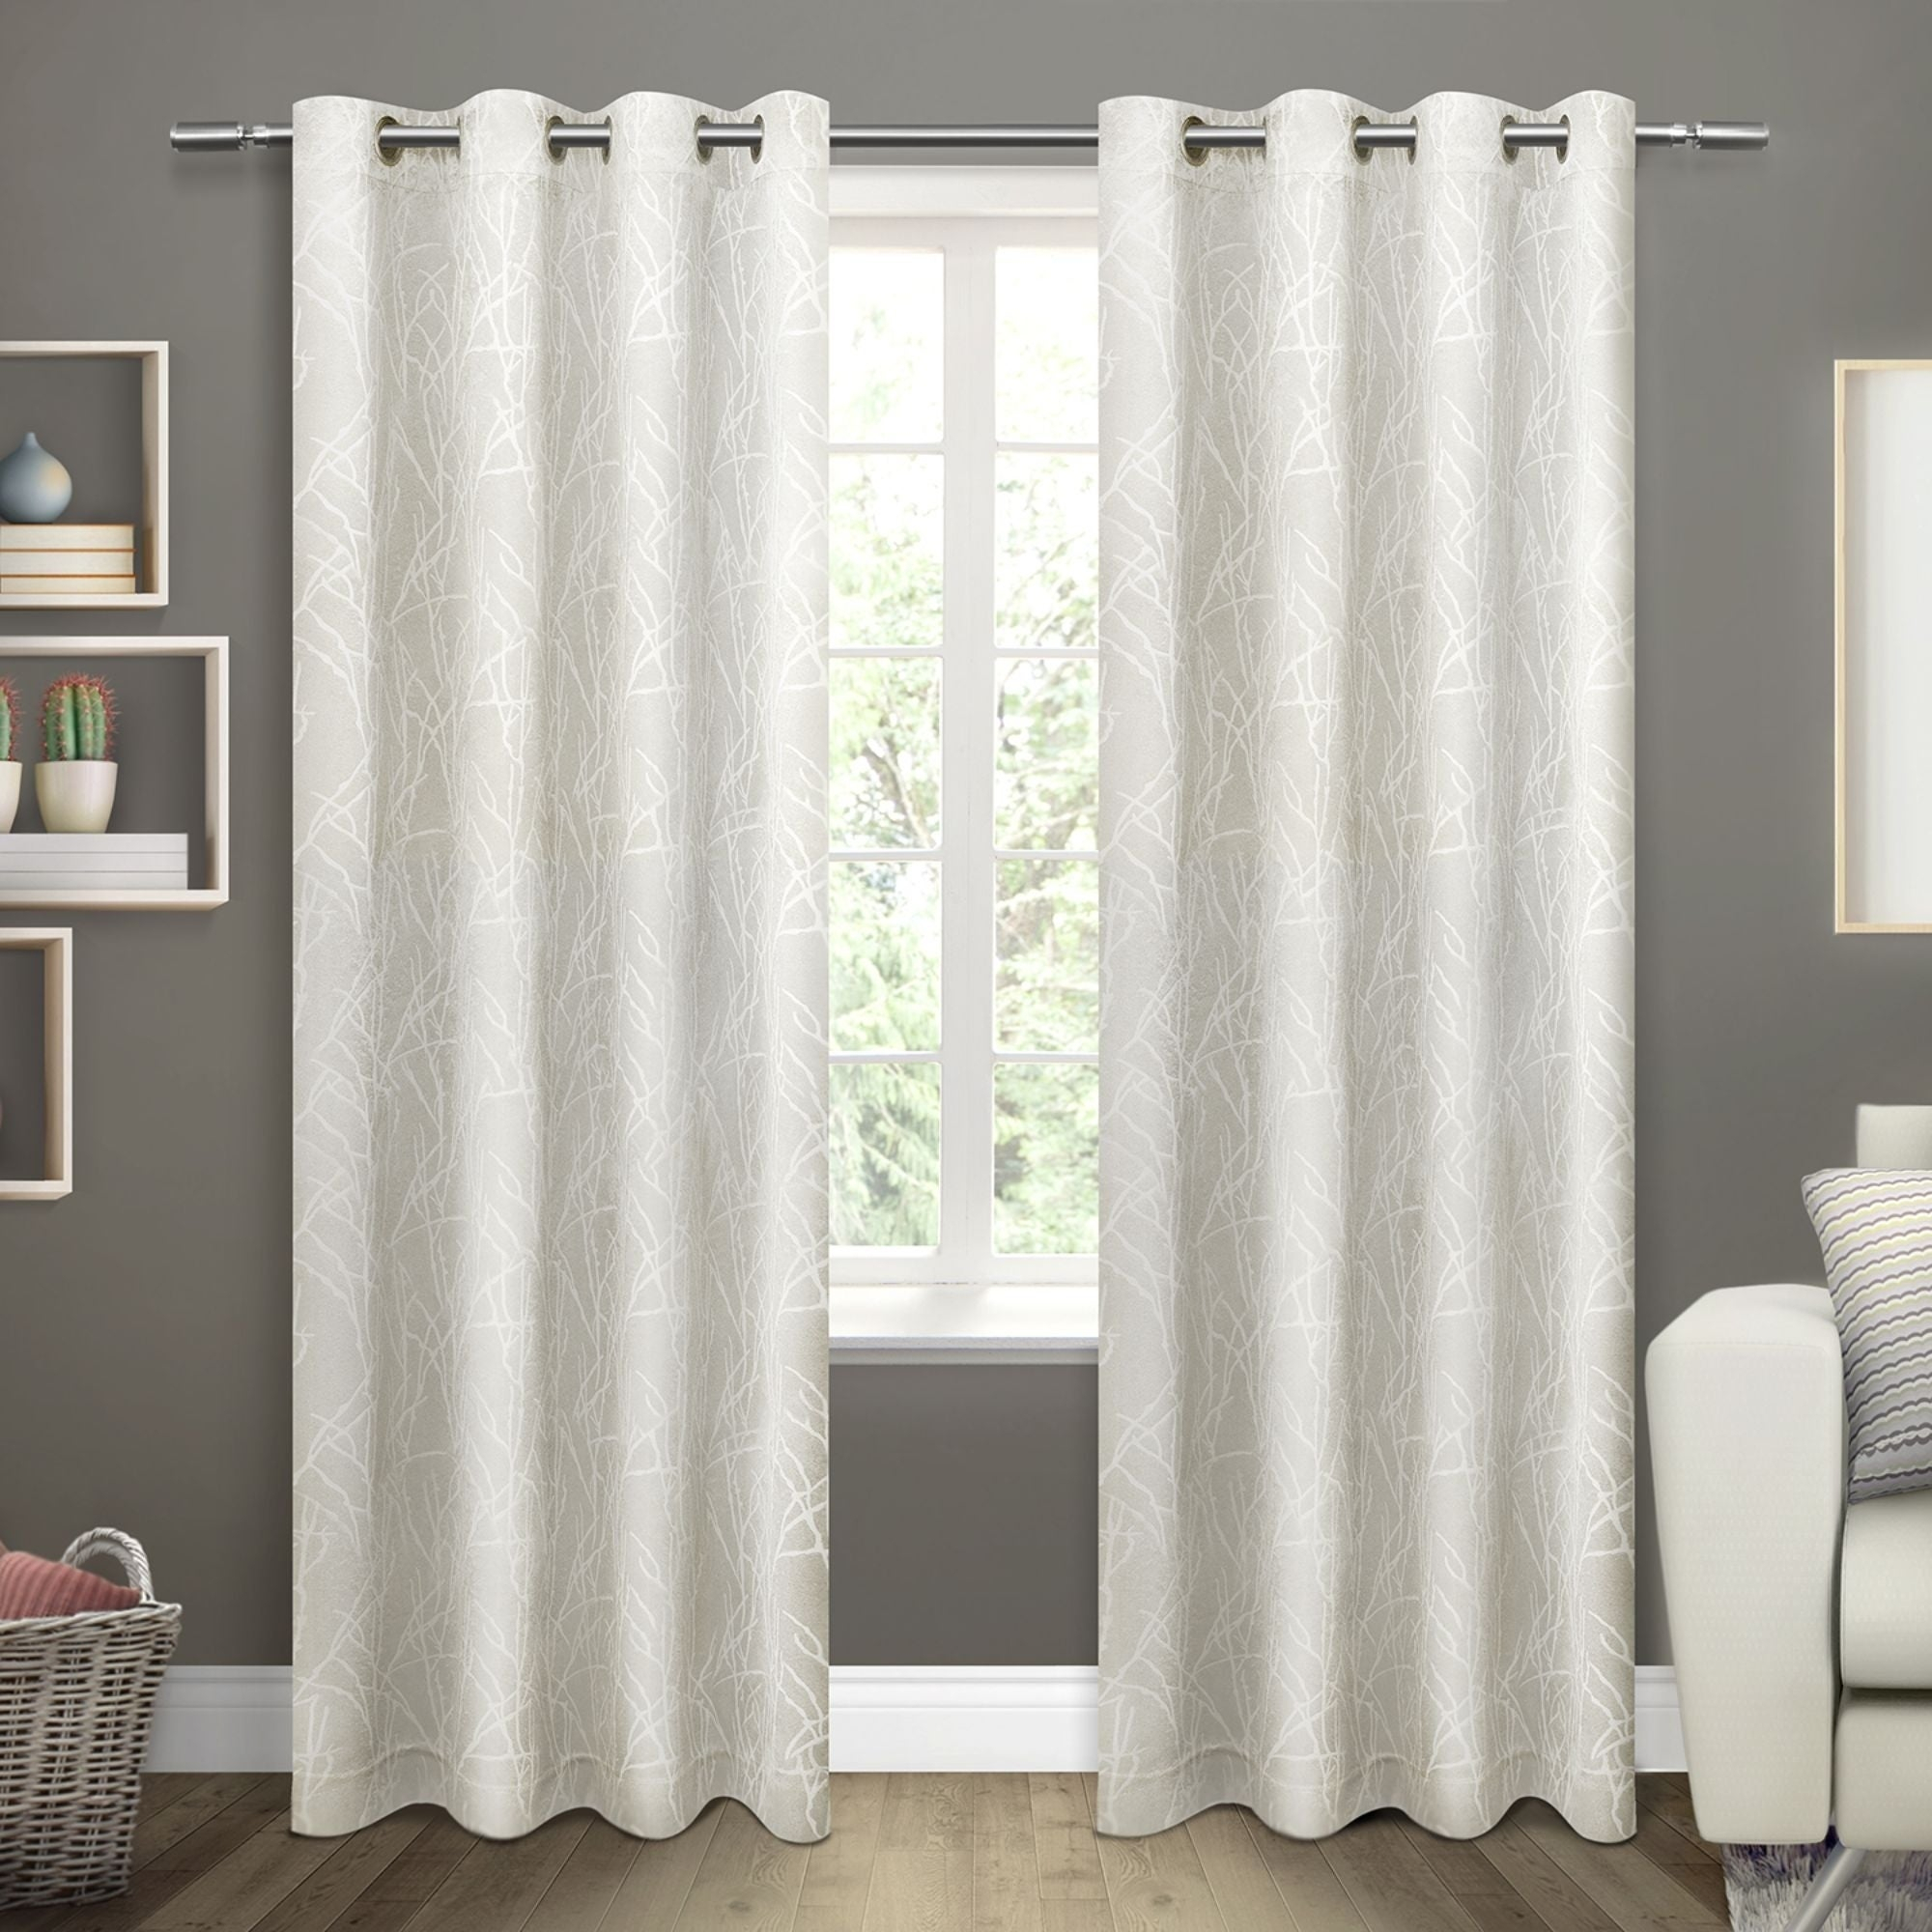 Ati Home Twig Insulated Blackout Curtain Panel Pair With Grommet Top For Insulated Grommet Blackout Curtain Panel Pairs (View 1 of 20)